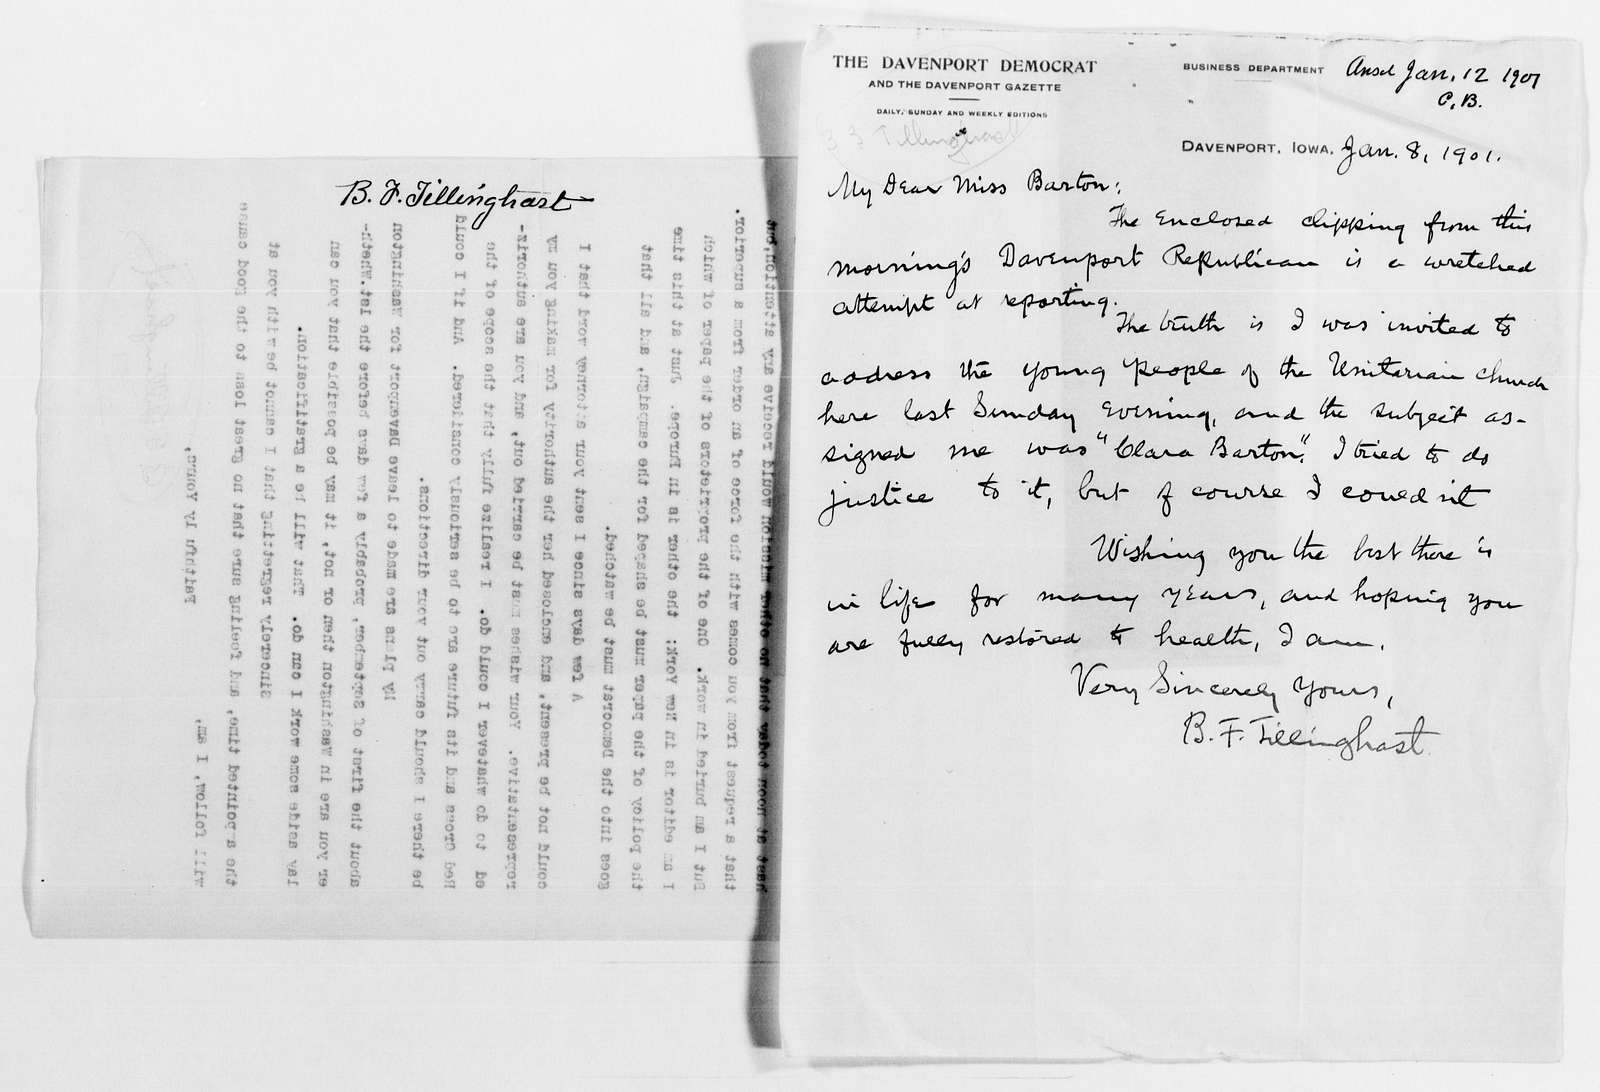 Clara Barton Papers: General Correspondence, 1838-1912; Tillinghast, B. F. and Nellie N., 1890-1904